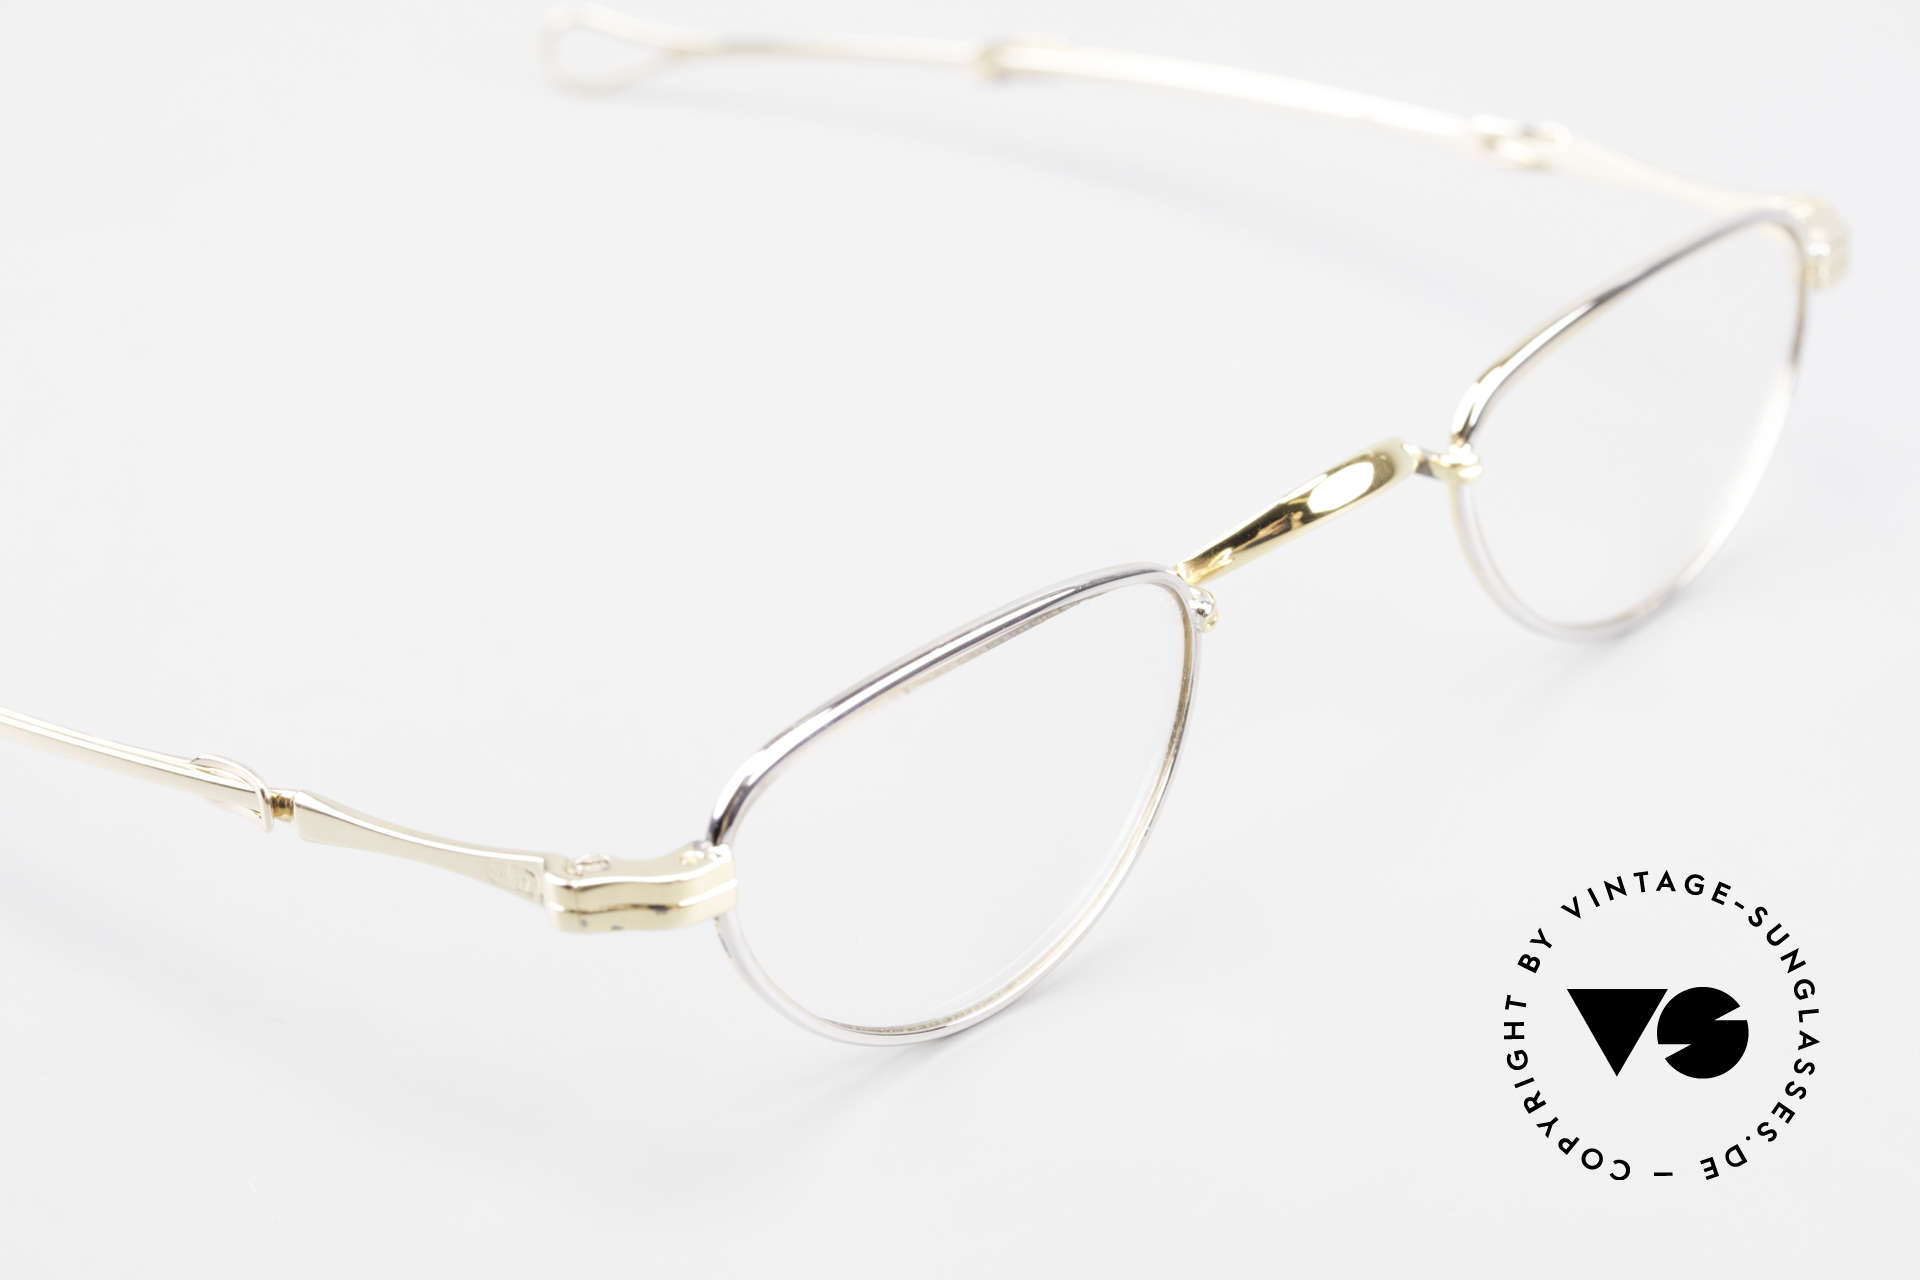 Lunor I 06 Telescopic Extendable Reading Frame, Size: small, Made for Men and Women